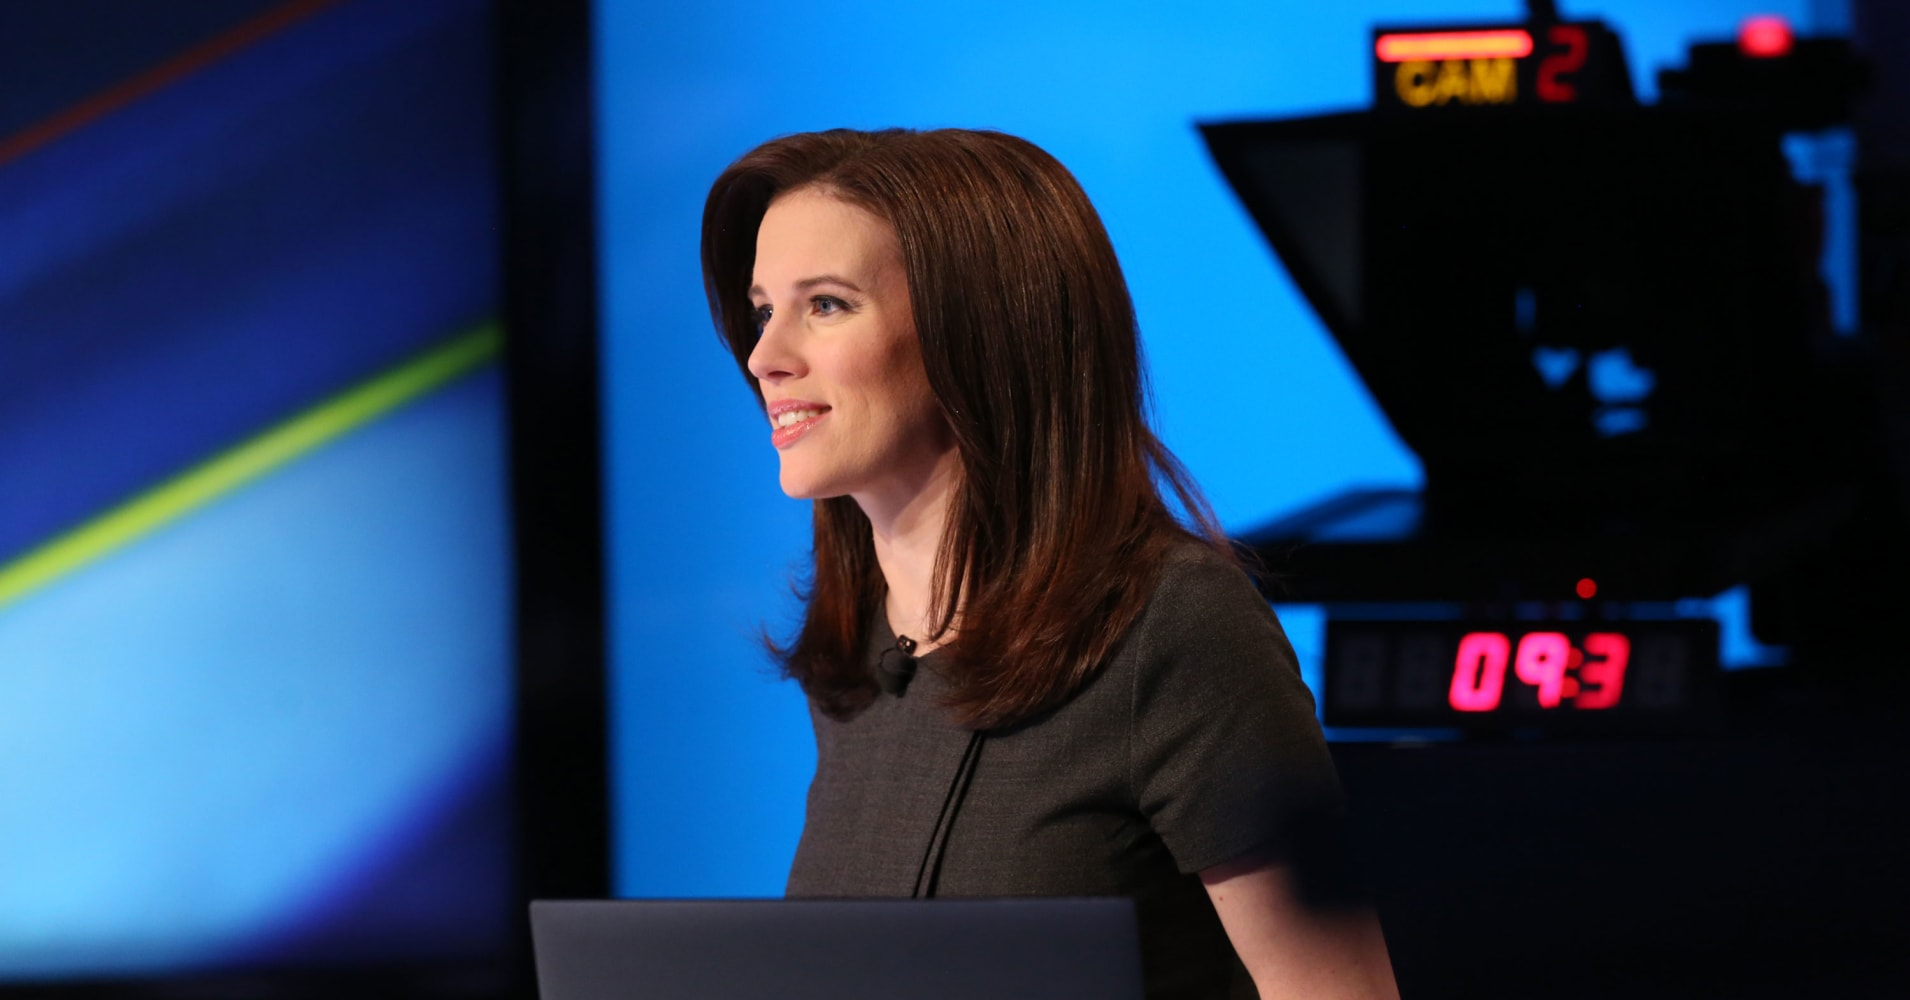 Kelly Evans: Moving to Tennessee